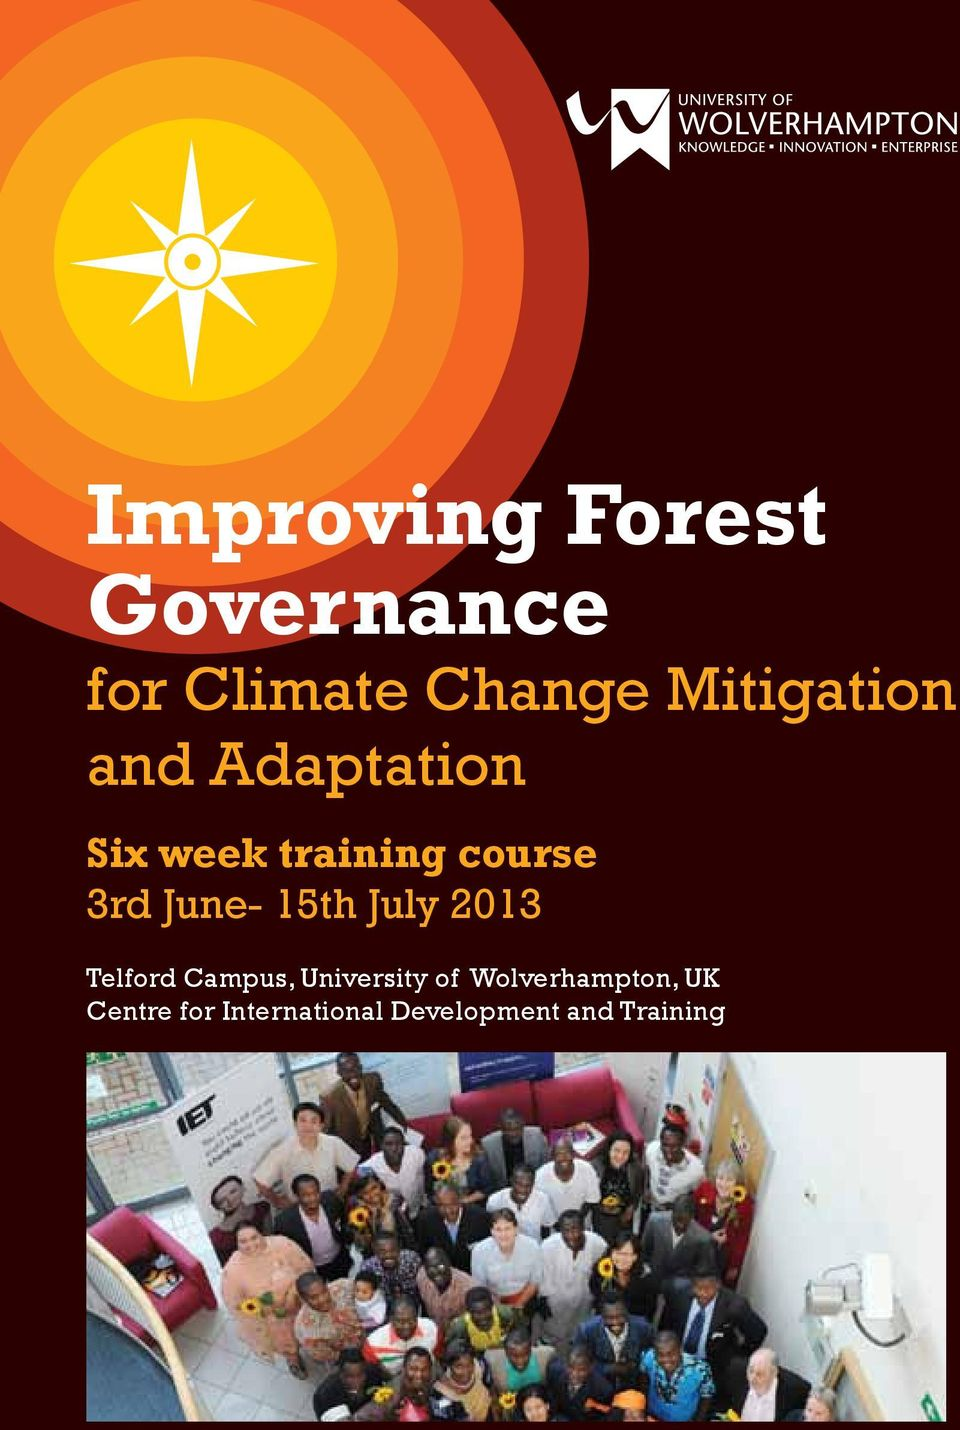 June- 15th July 2013 Telford Campus, University of